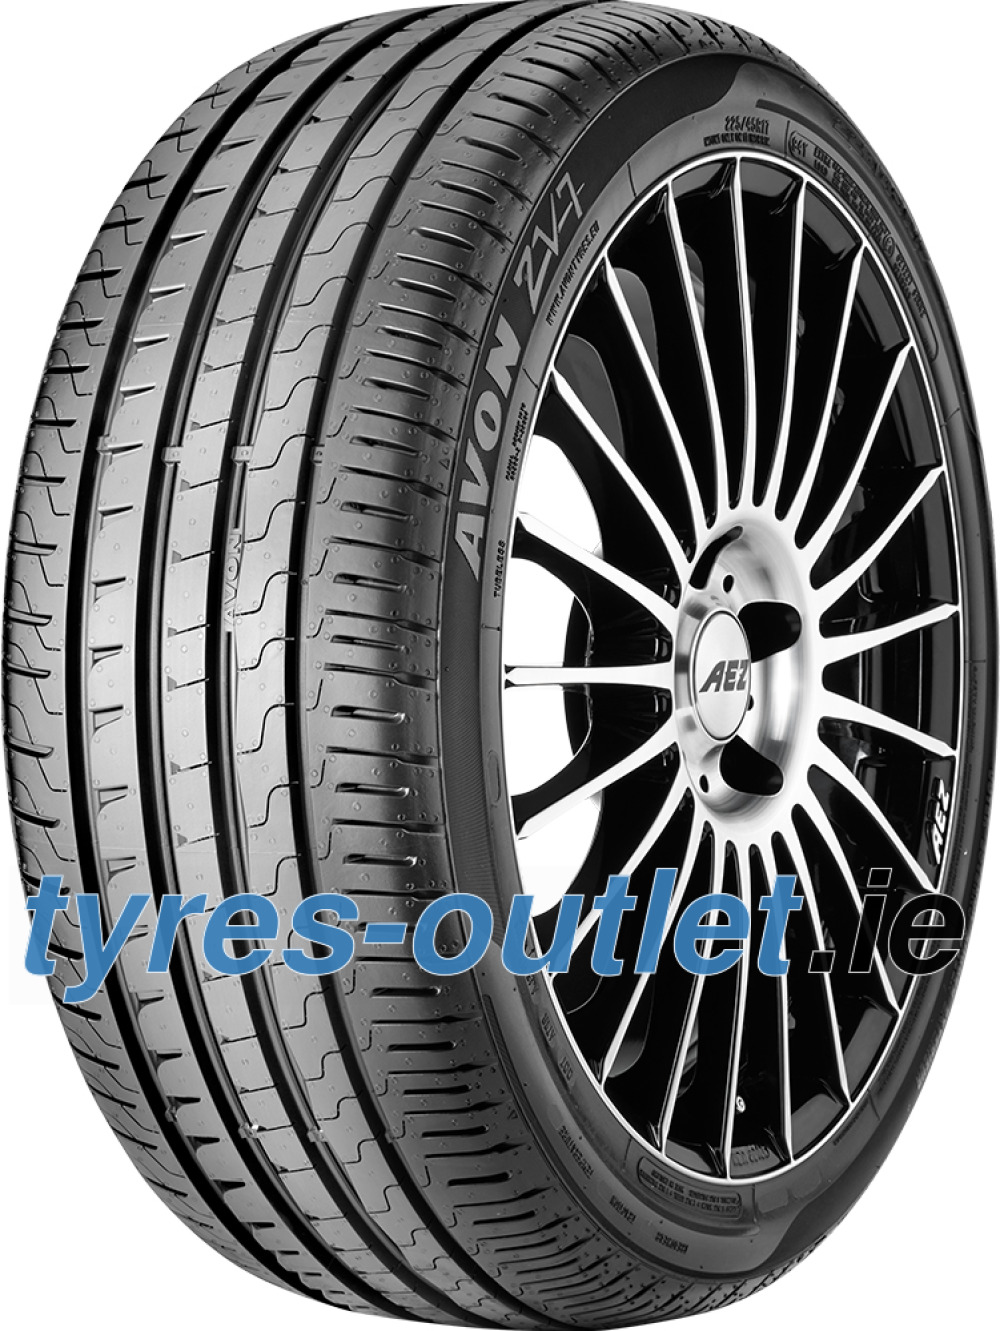 Avon ZV7 ( 205/45 R16 83W with Rim flange protection )